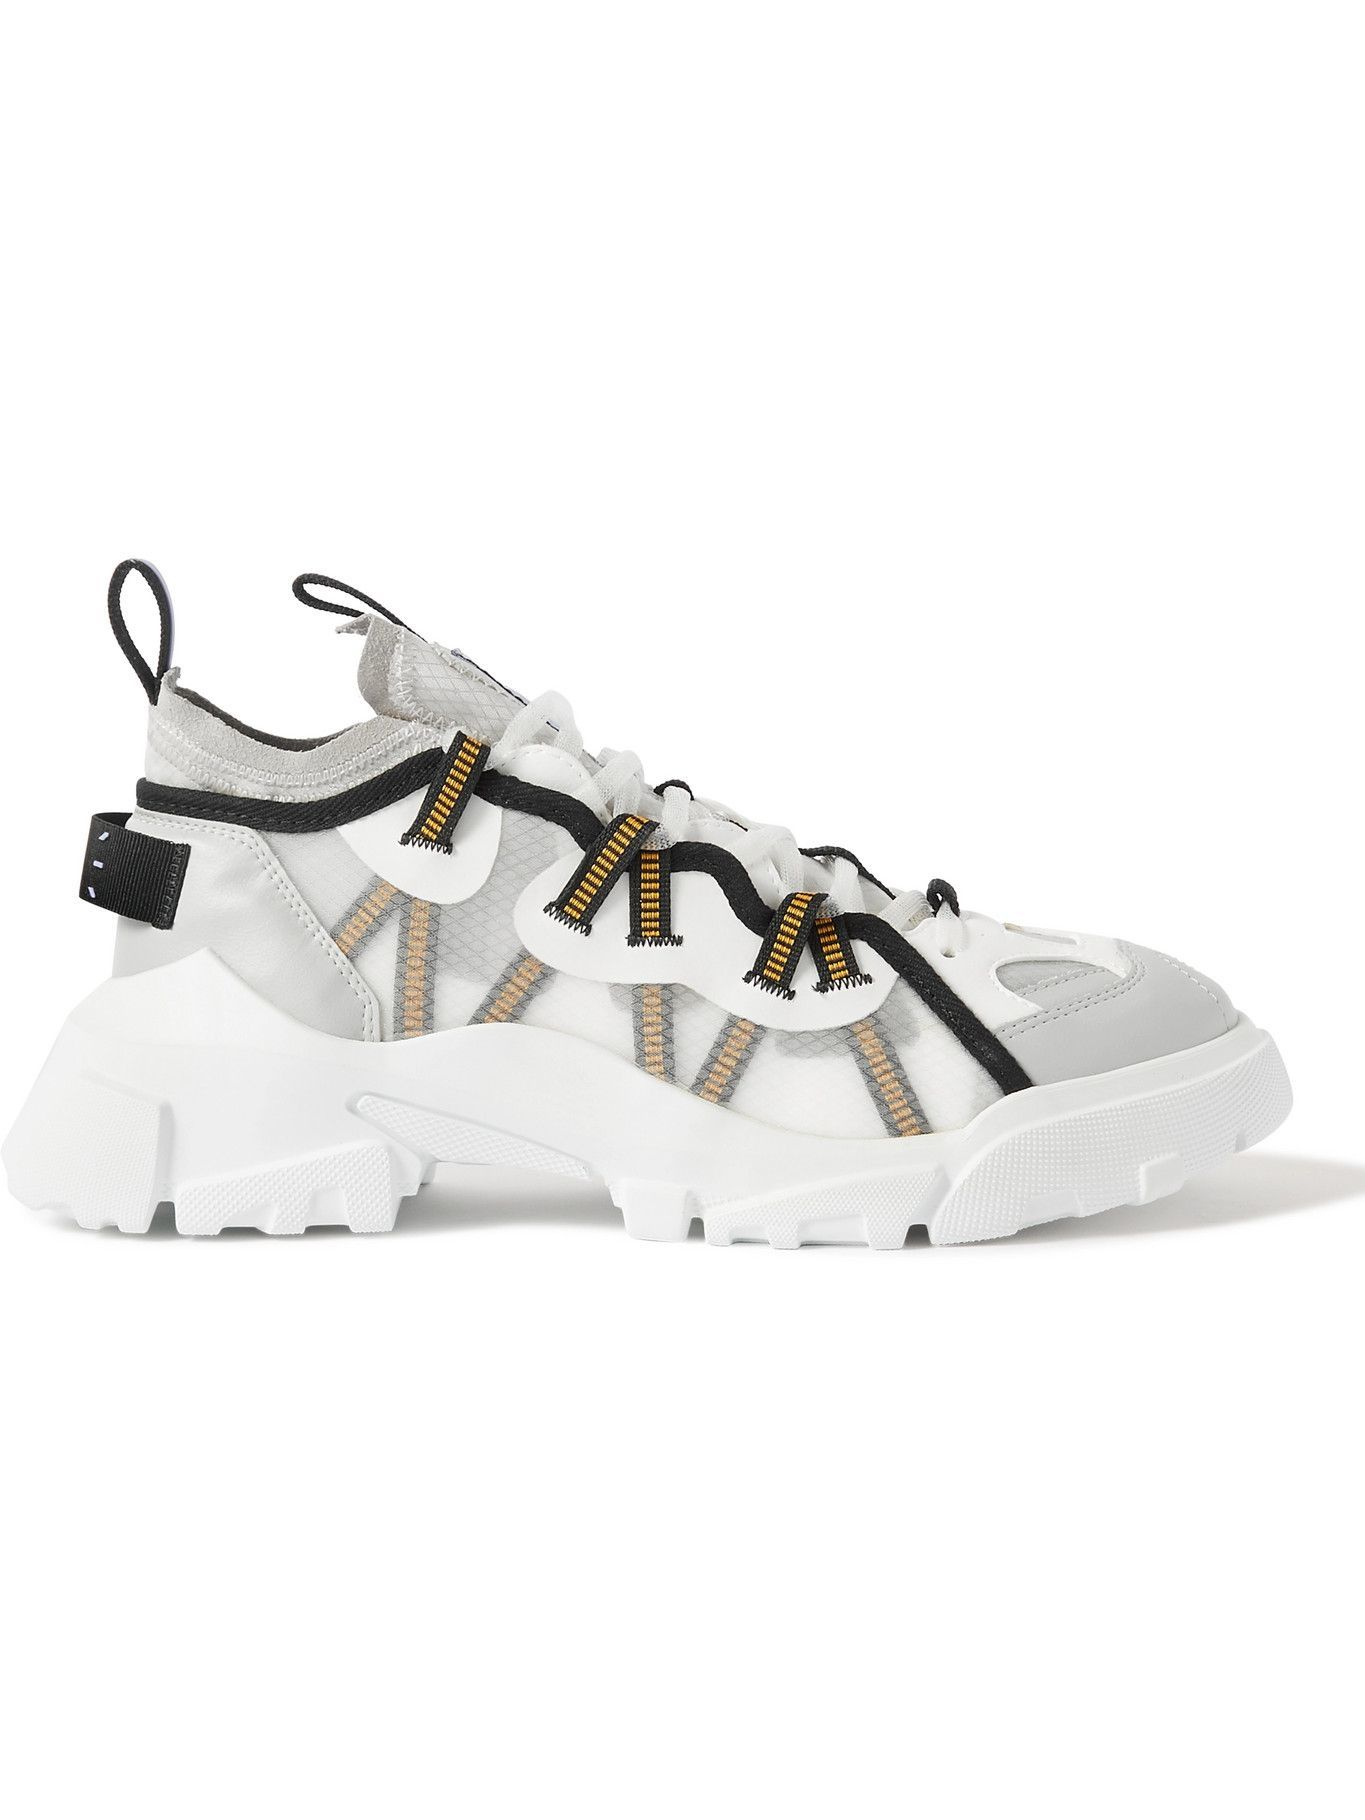 MCQ - Breathe BR-7 Orbyt Descender Leather-Trimmed Ripstop Sneakers - White